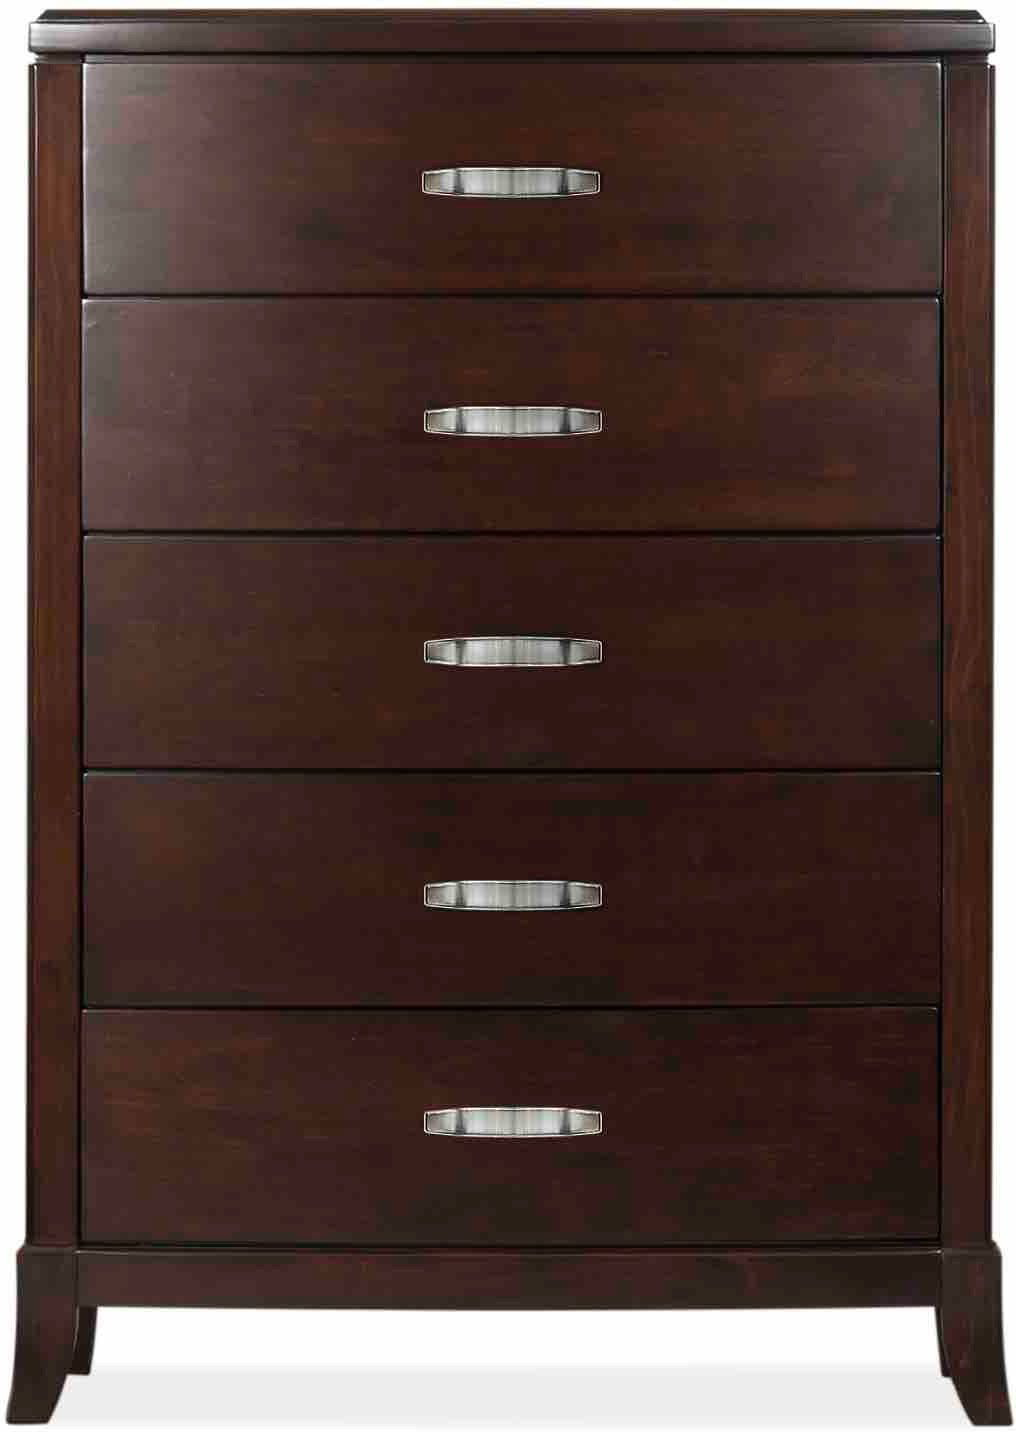 Picture of Delaney Chest of Drawers